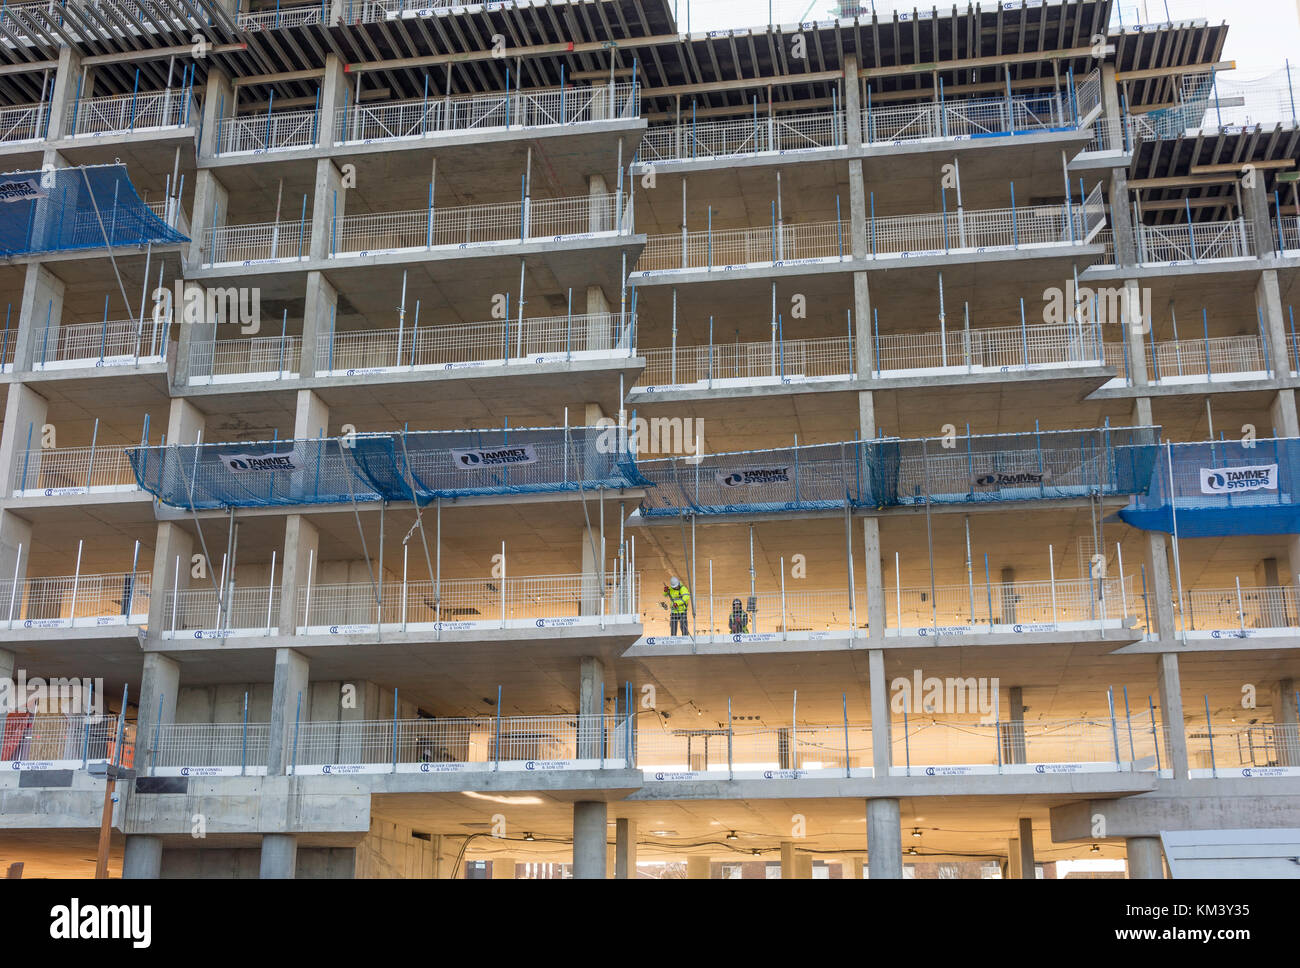 Building under construction, Bracknell, Berkshire, England, United Kingdom - Stock Image